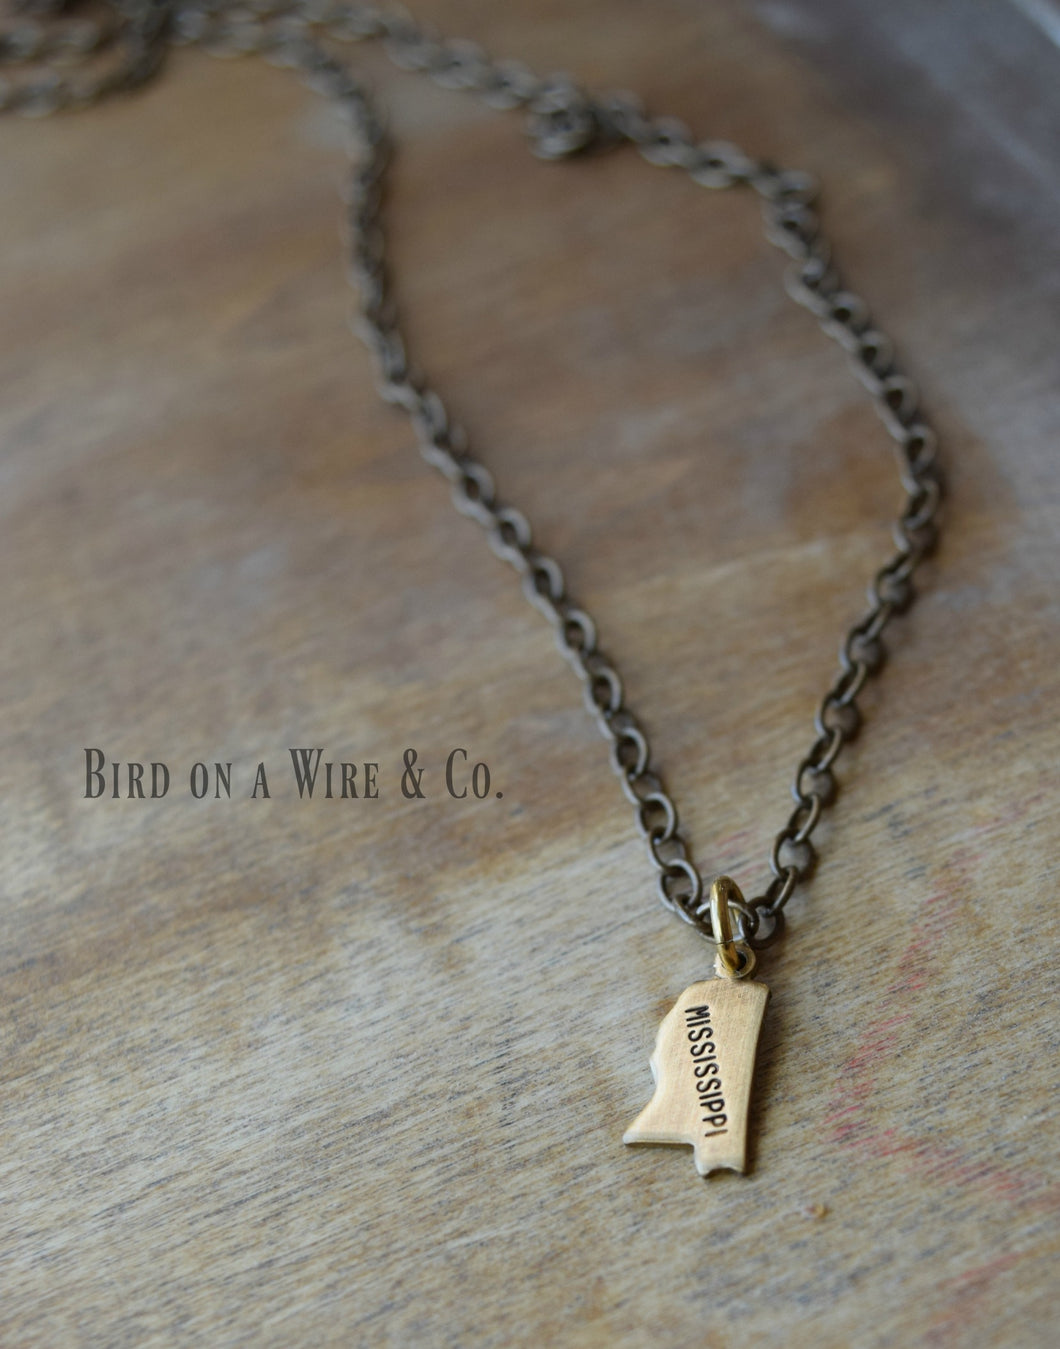 The Dainty Mississippi Necklace